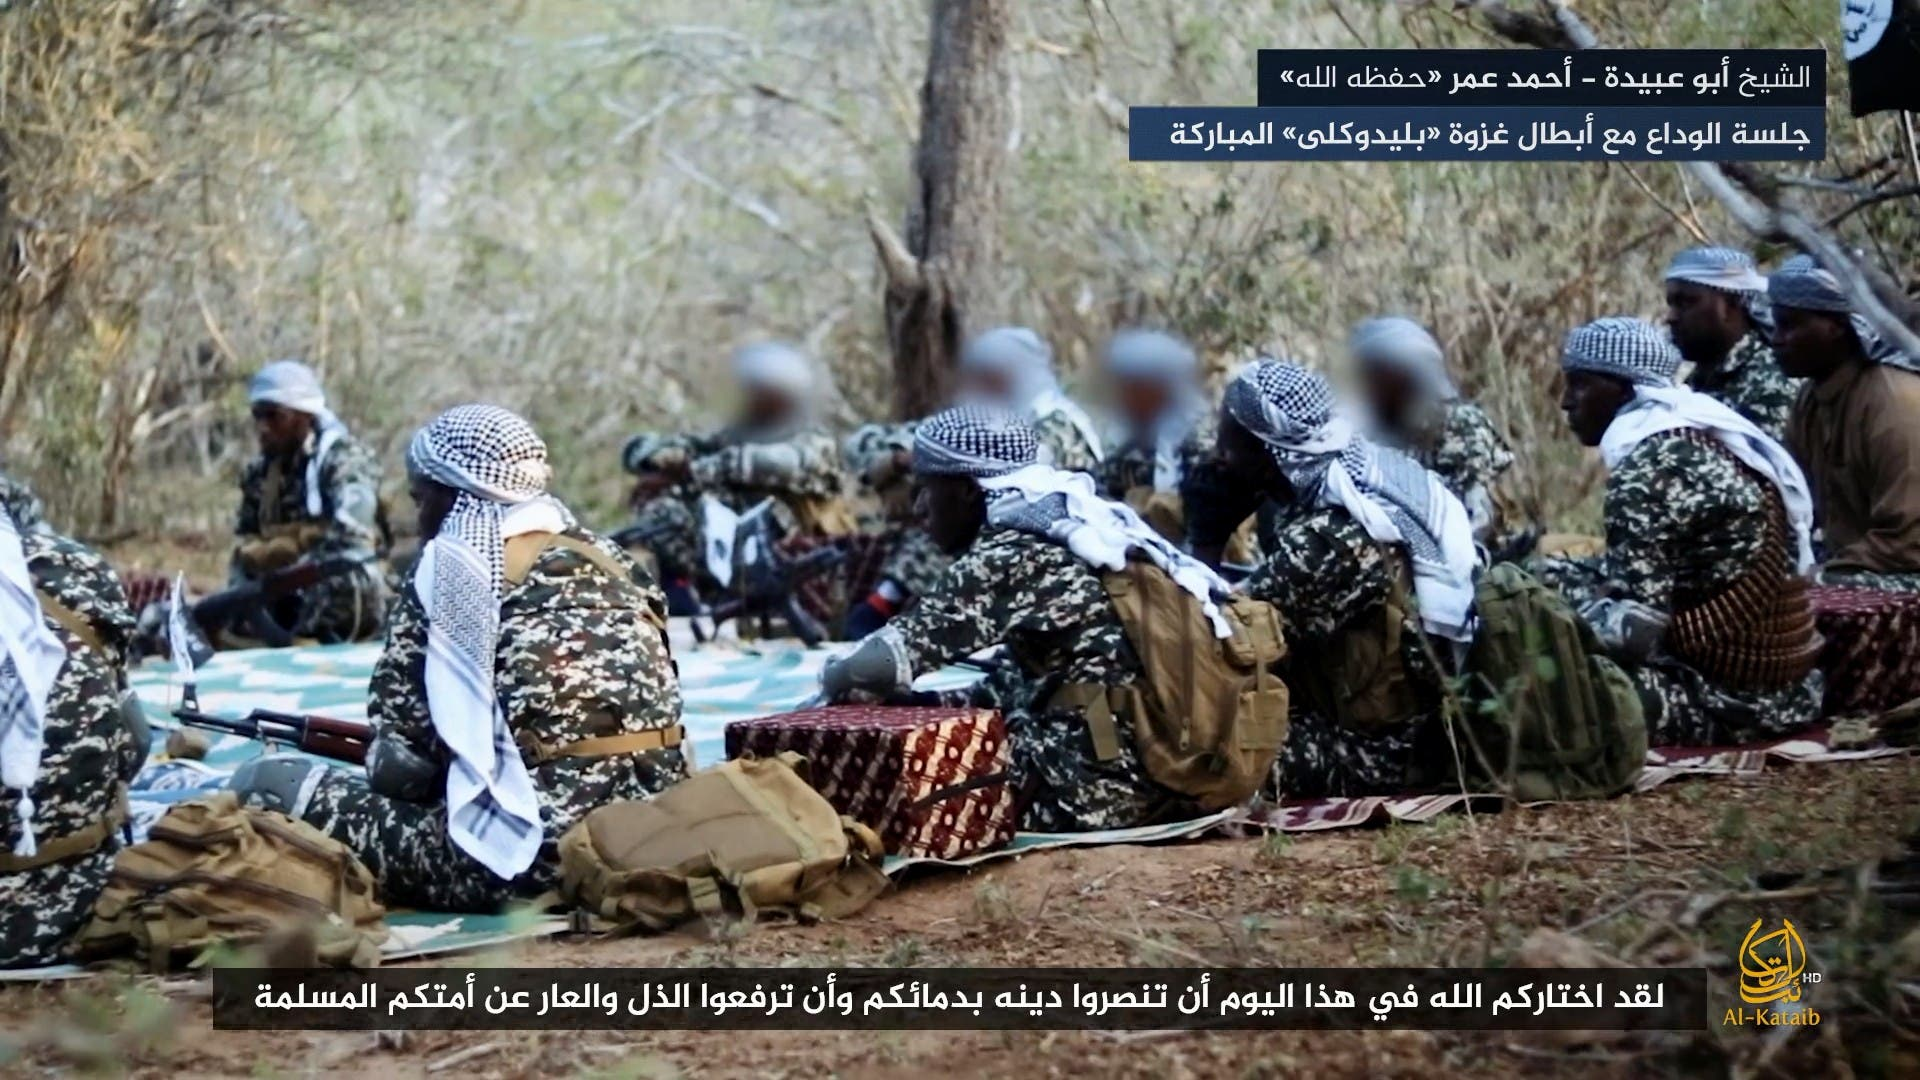 Al-Shabab chief partially seen on video for first time